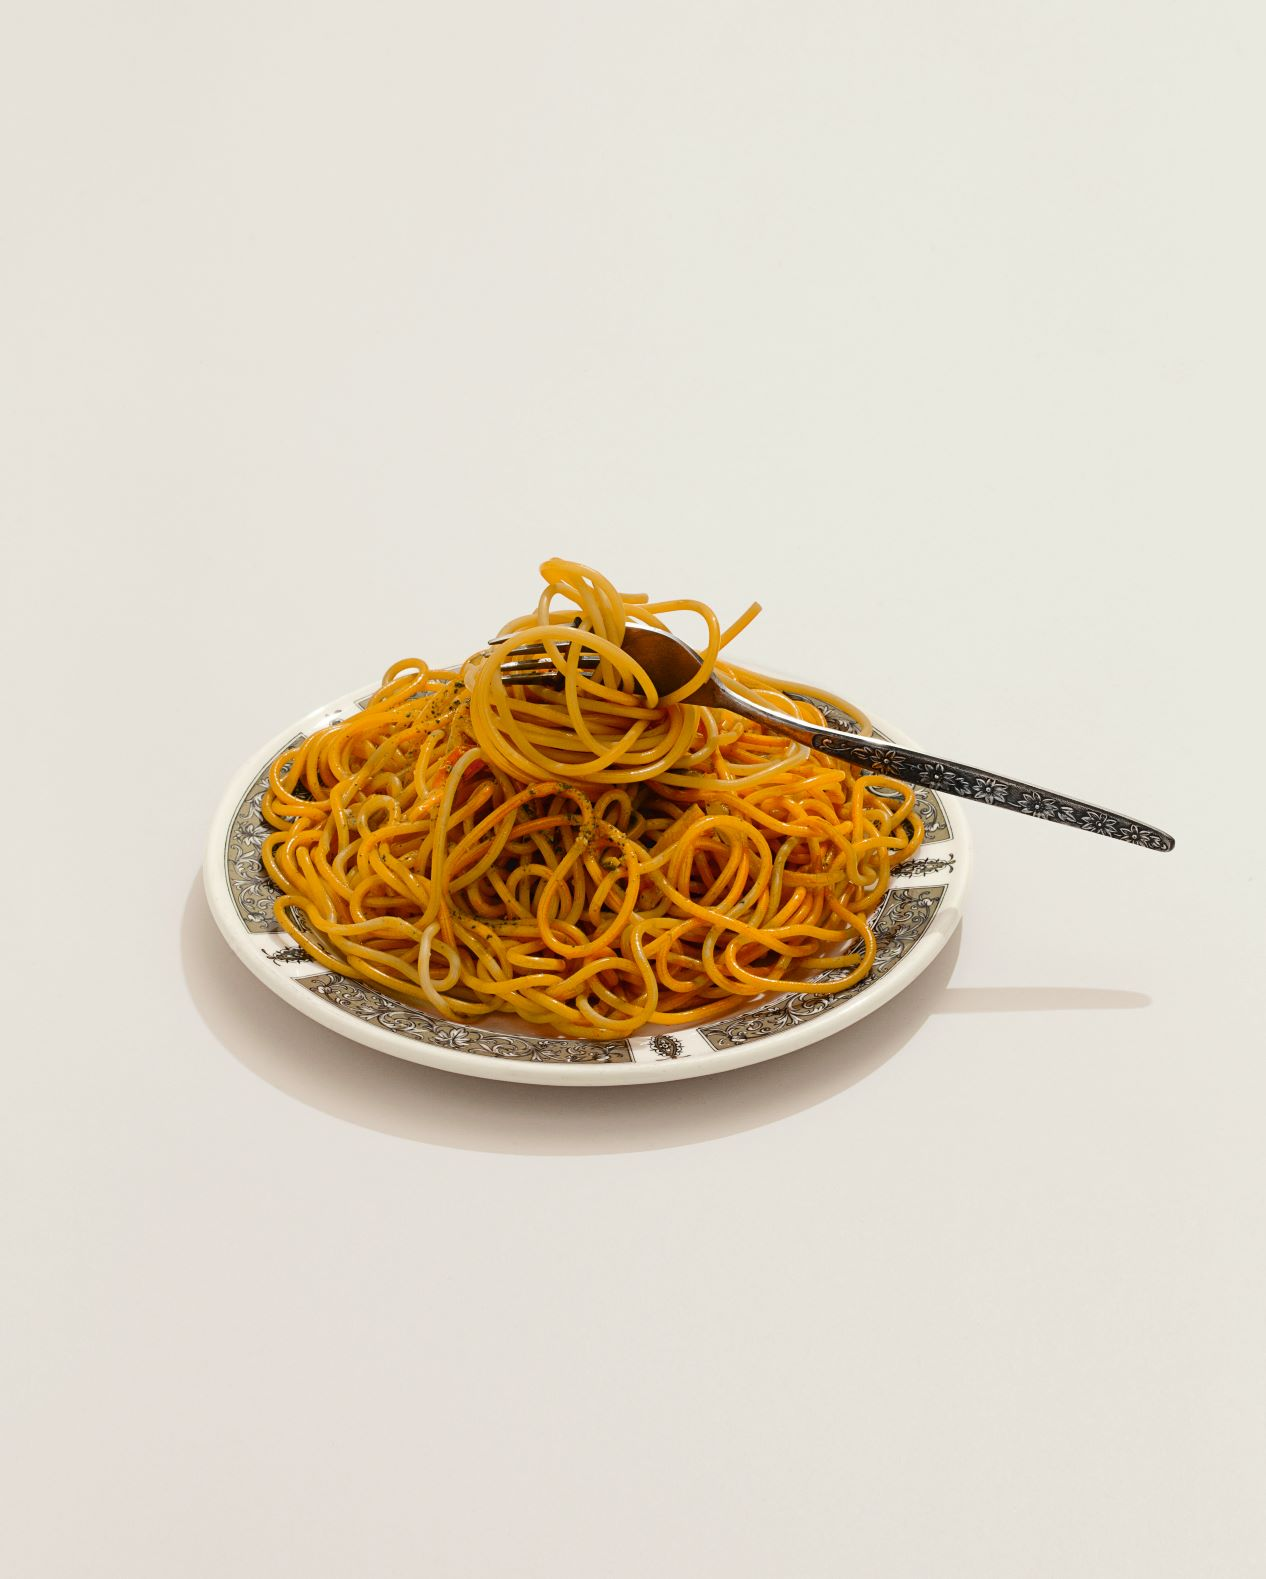 A Wax Plate of Spaghetti. From Paul Smith